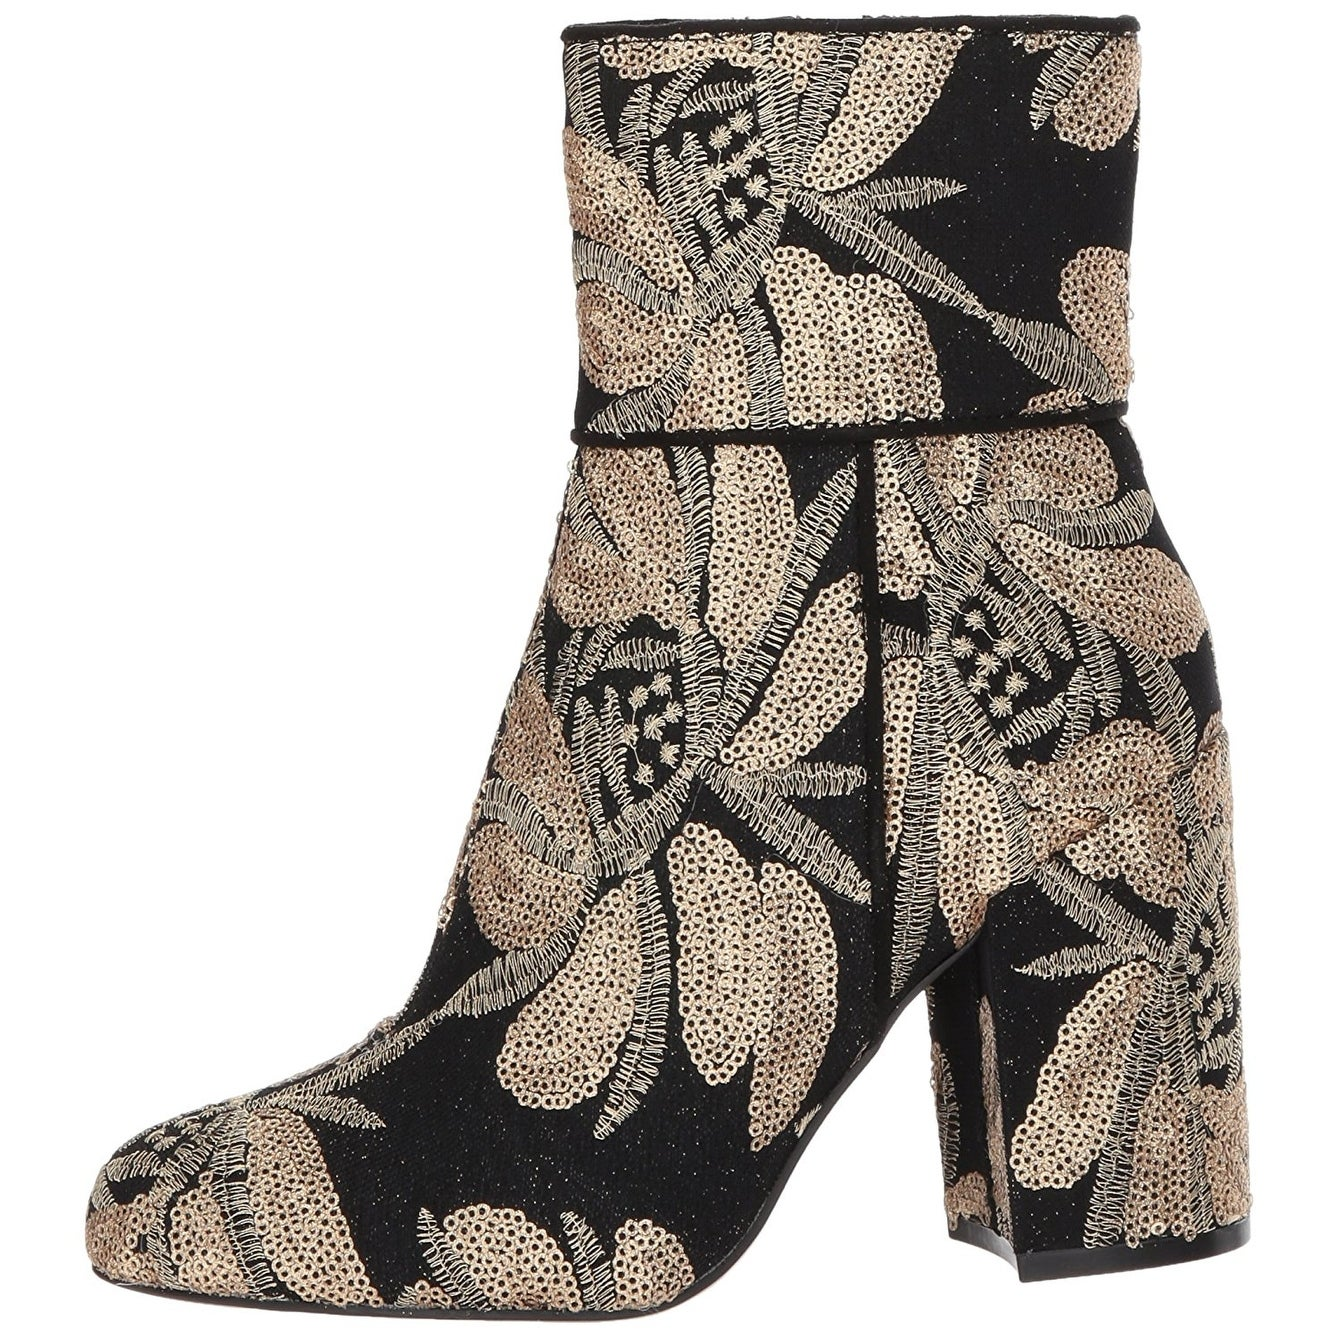 05b203cd6c9 Steve Madden Womens Goldie Fabric Closed Toe Ankle Fashion Boots